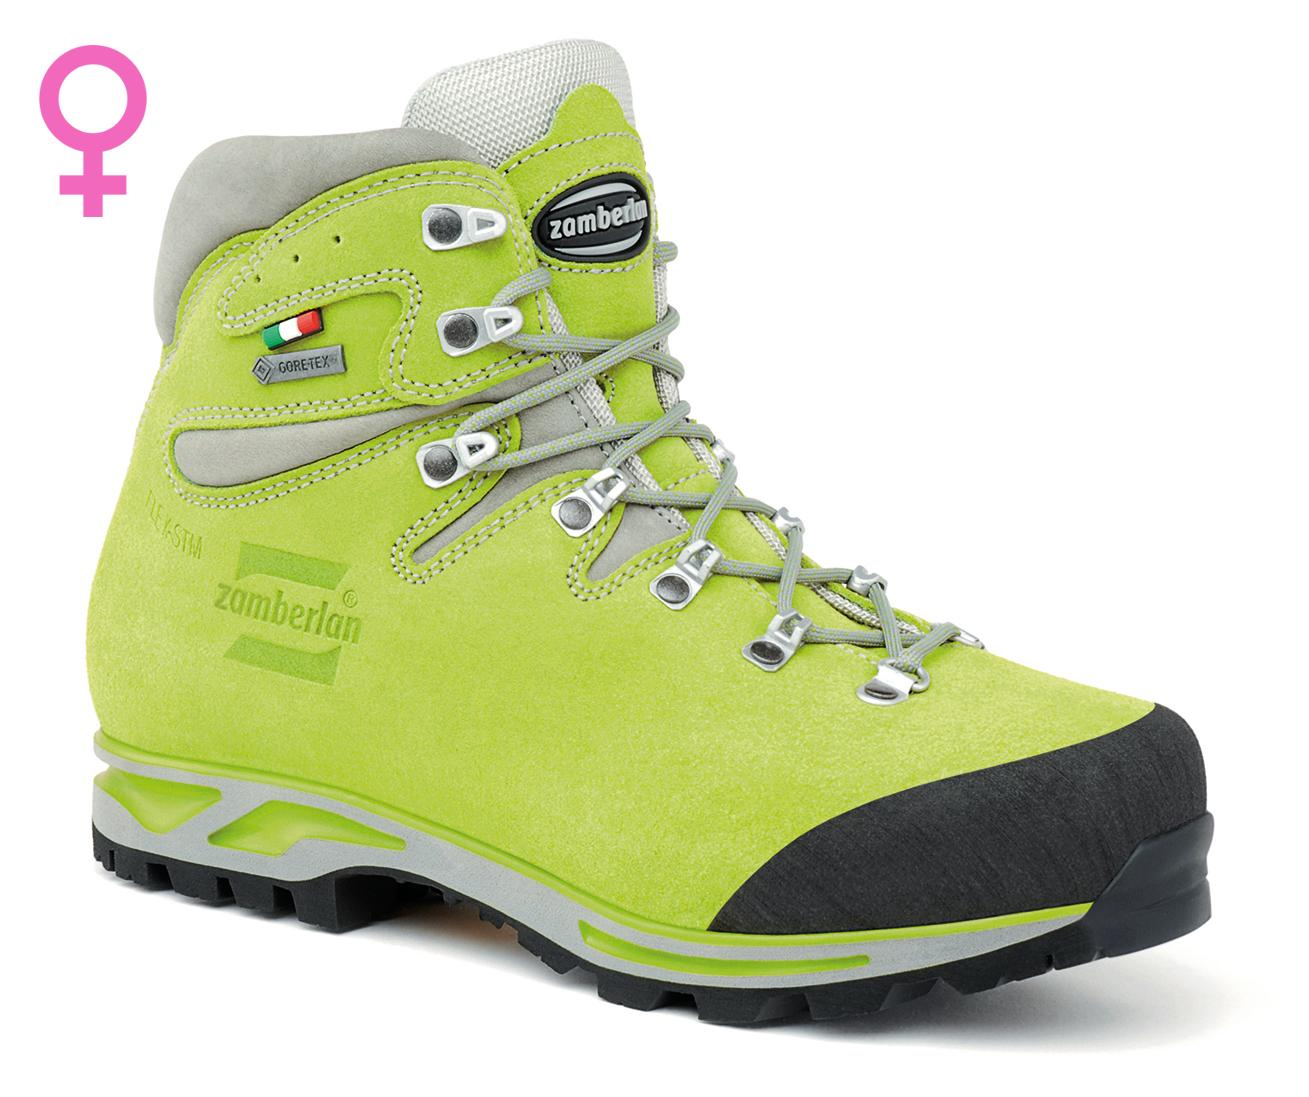 900 ROLLE GTX WNS   -   Bottes Hiking   -   Acid green